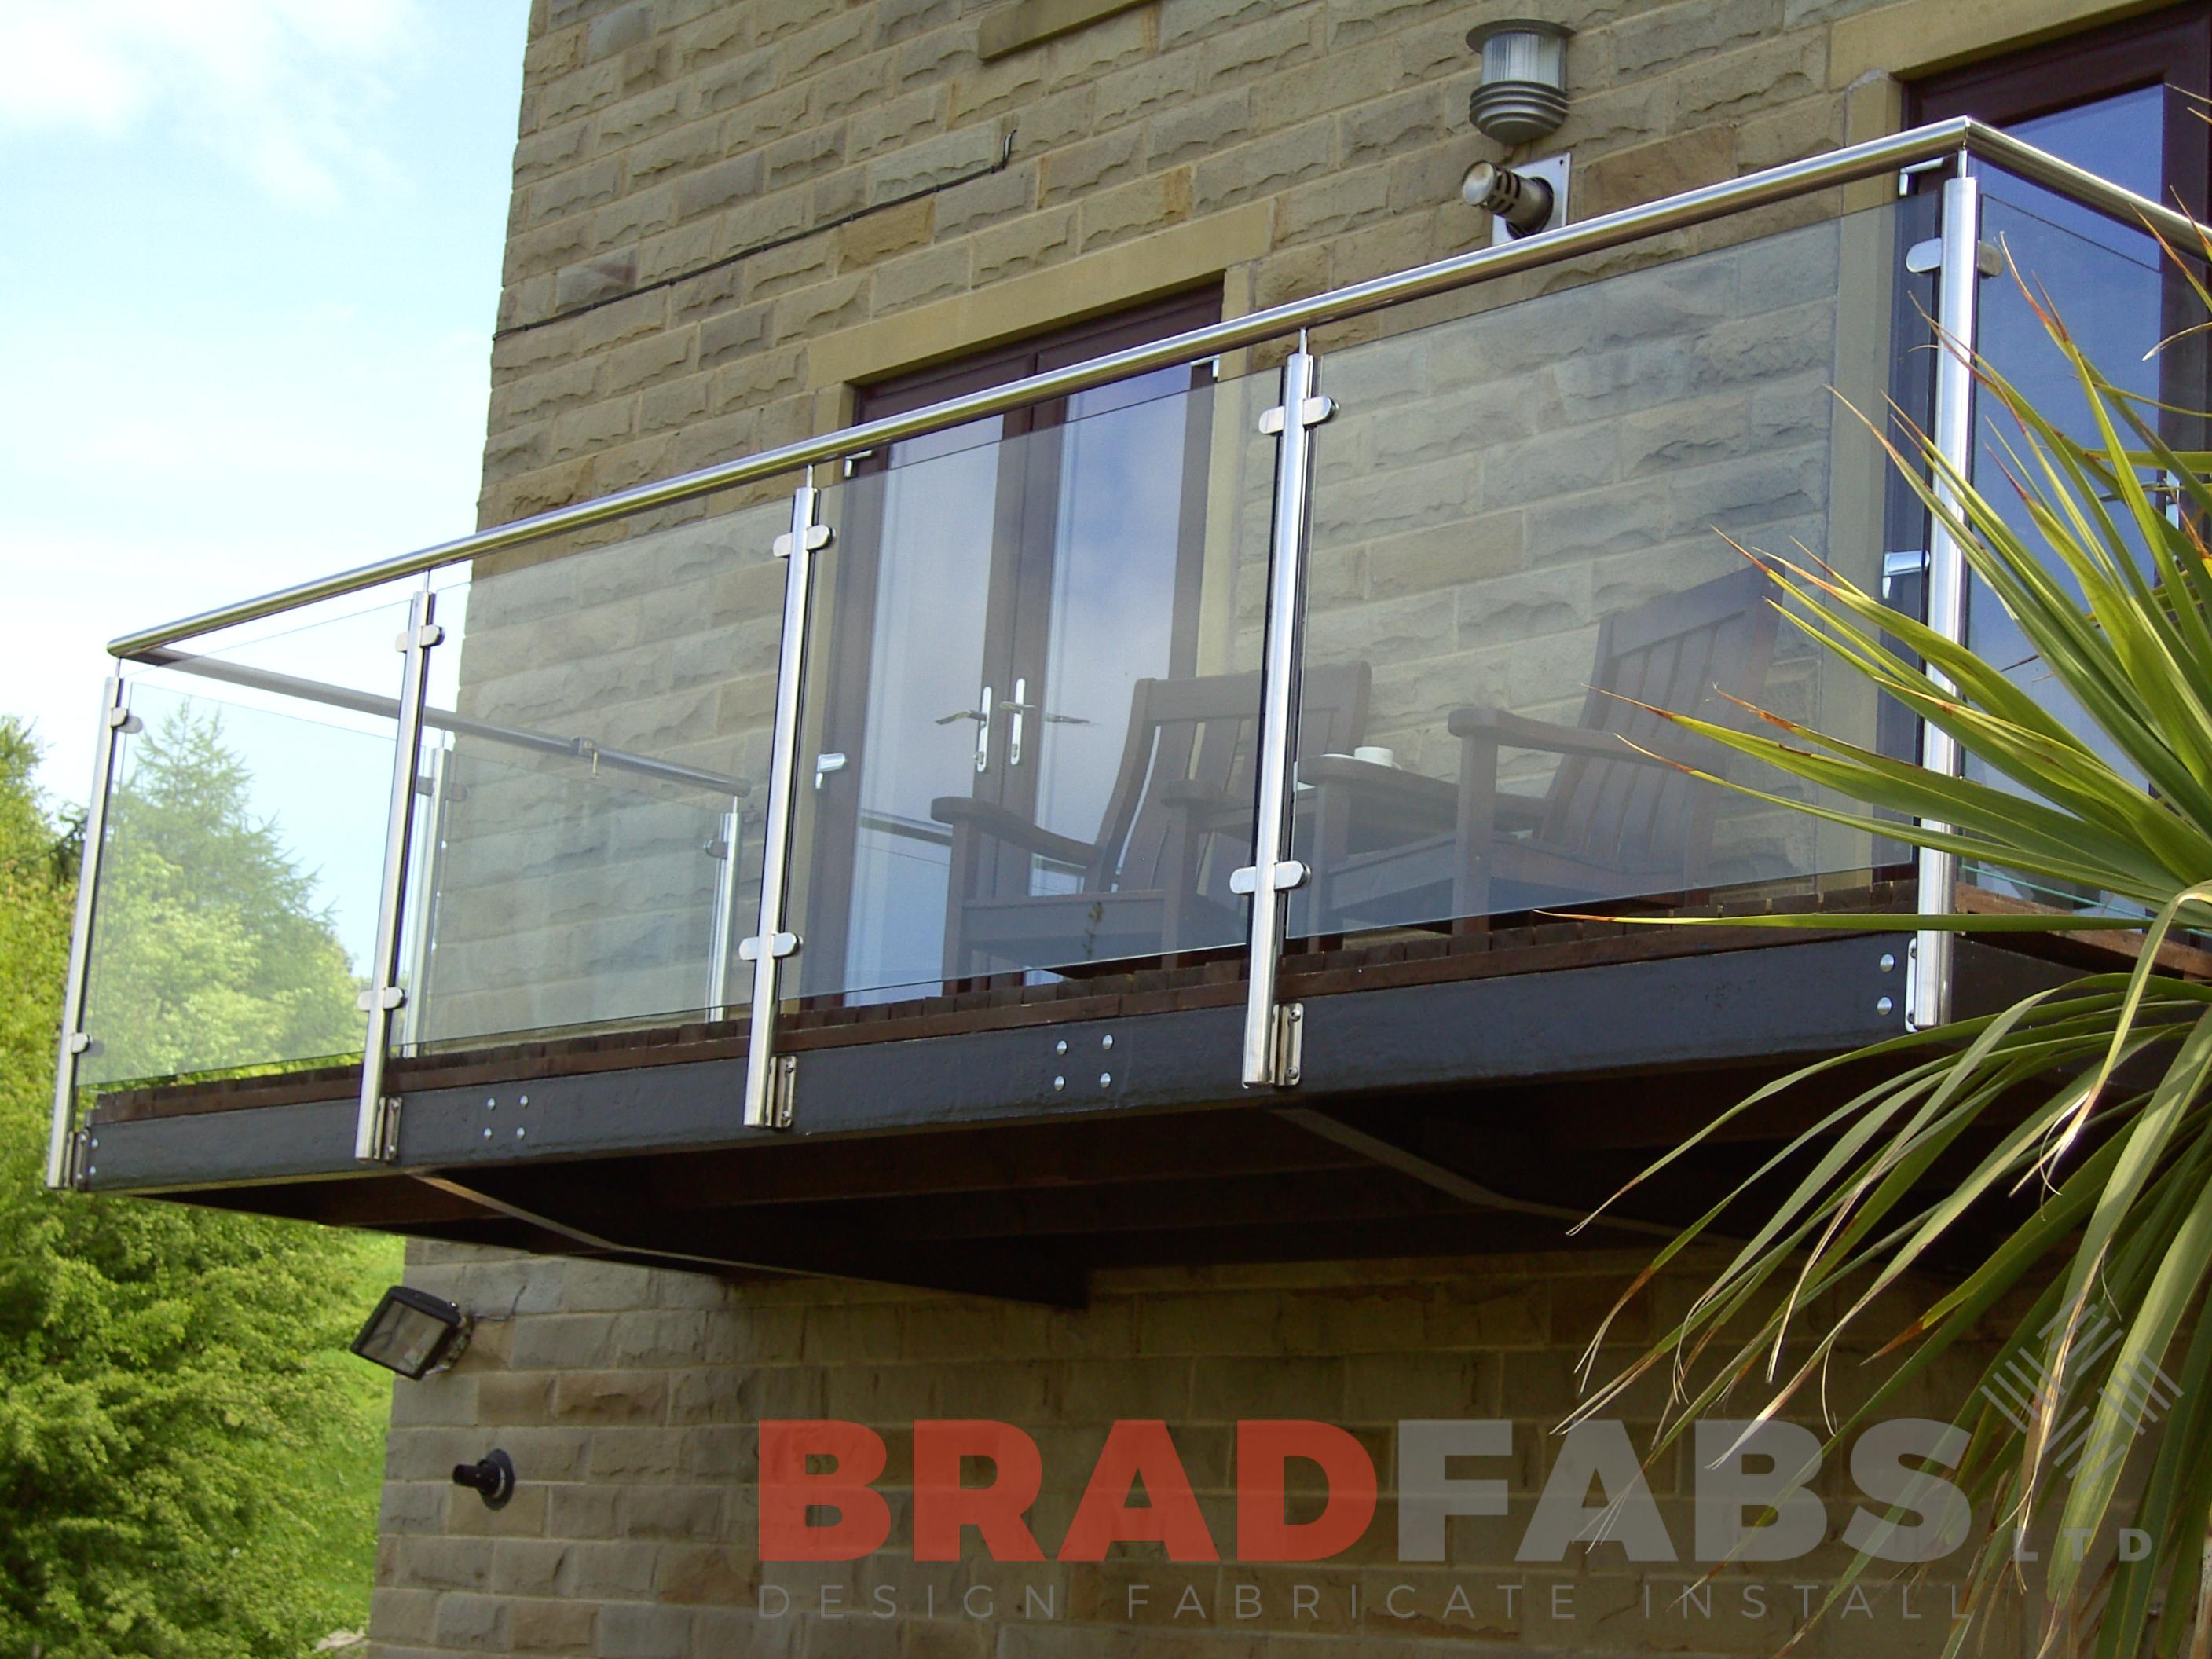 Large balcony at a domestic property. Stainless steel balustrade with glass infill panels and composite decked flooring by Bradfabs